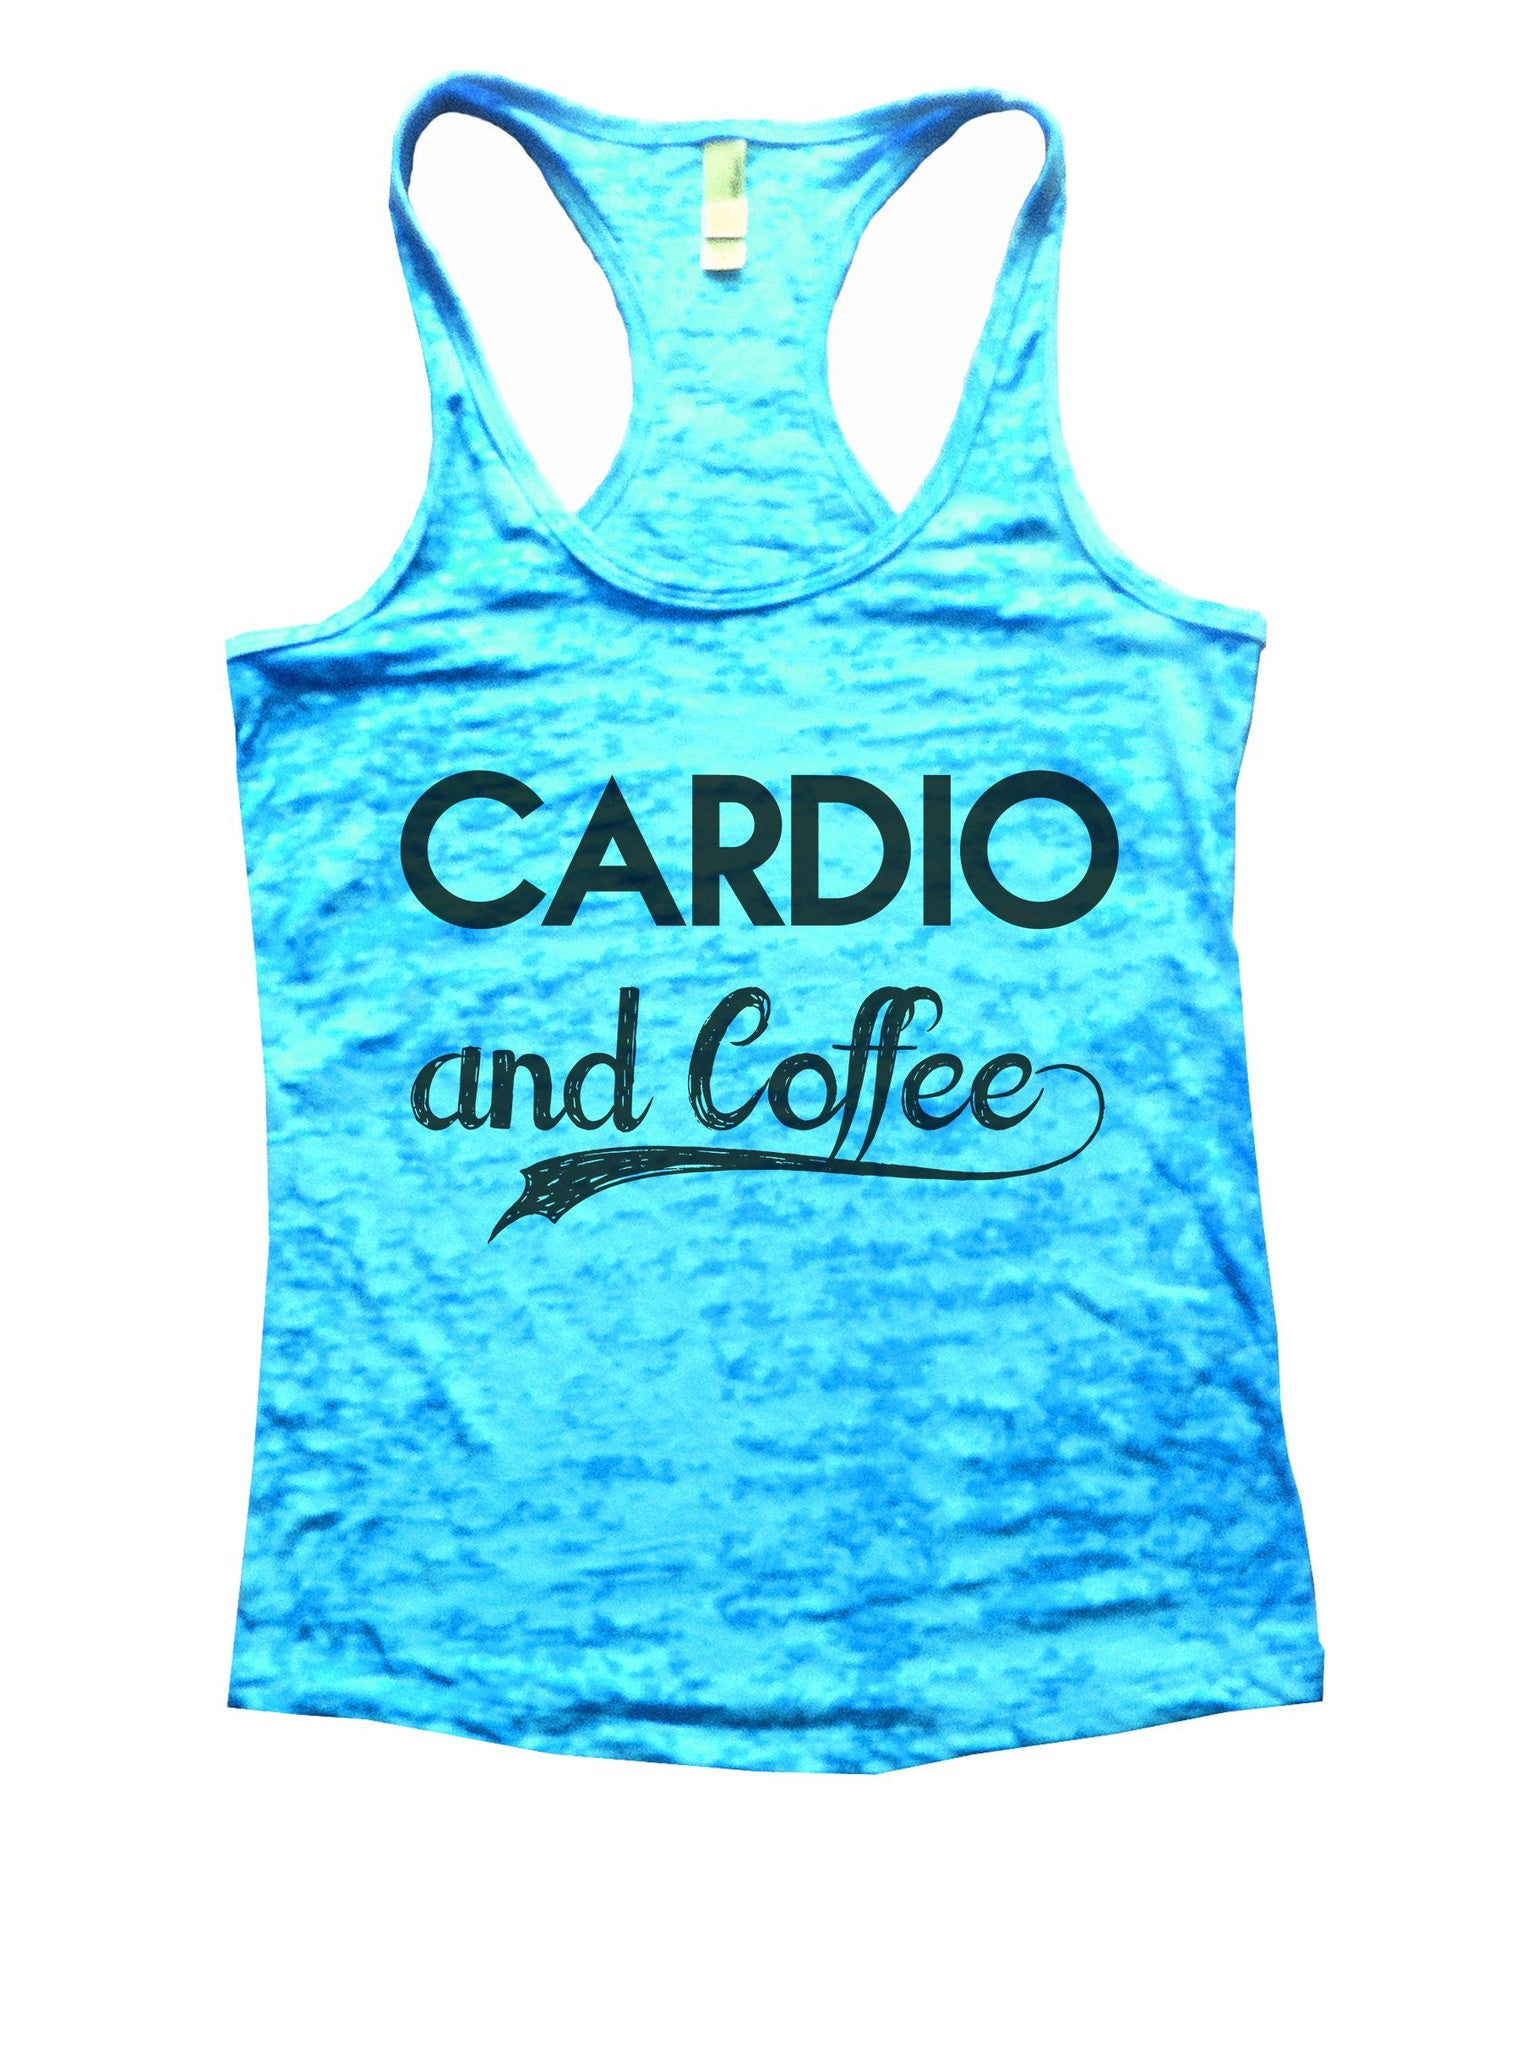 Cardio And Coffee Burnout Tank Top By BurnoutTankTops.com - 797 - Funny Shirts Tank Tops Burnouts and Triblends  - 4